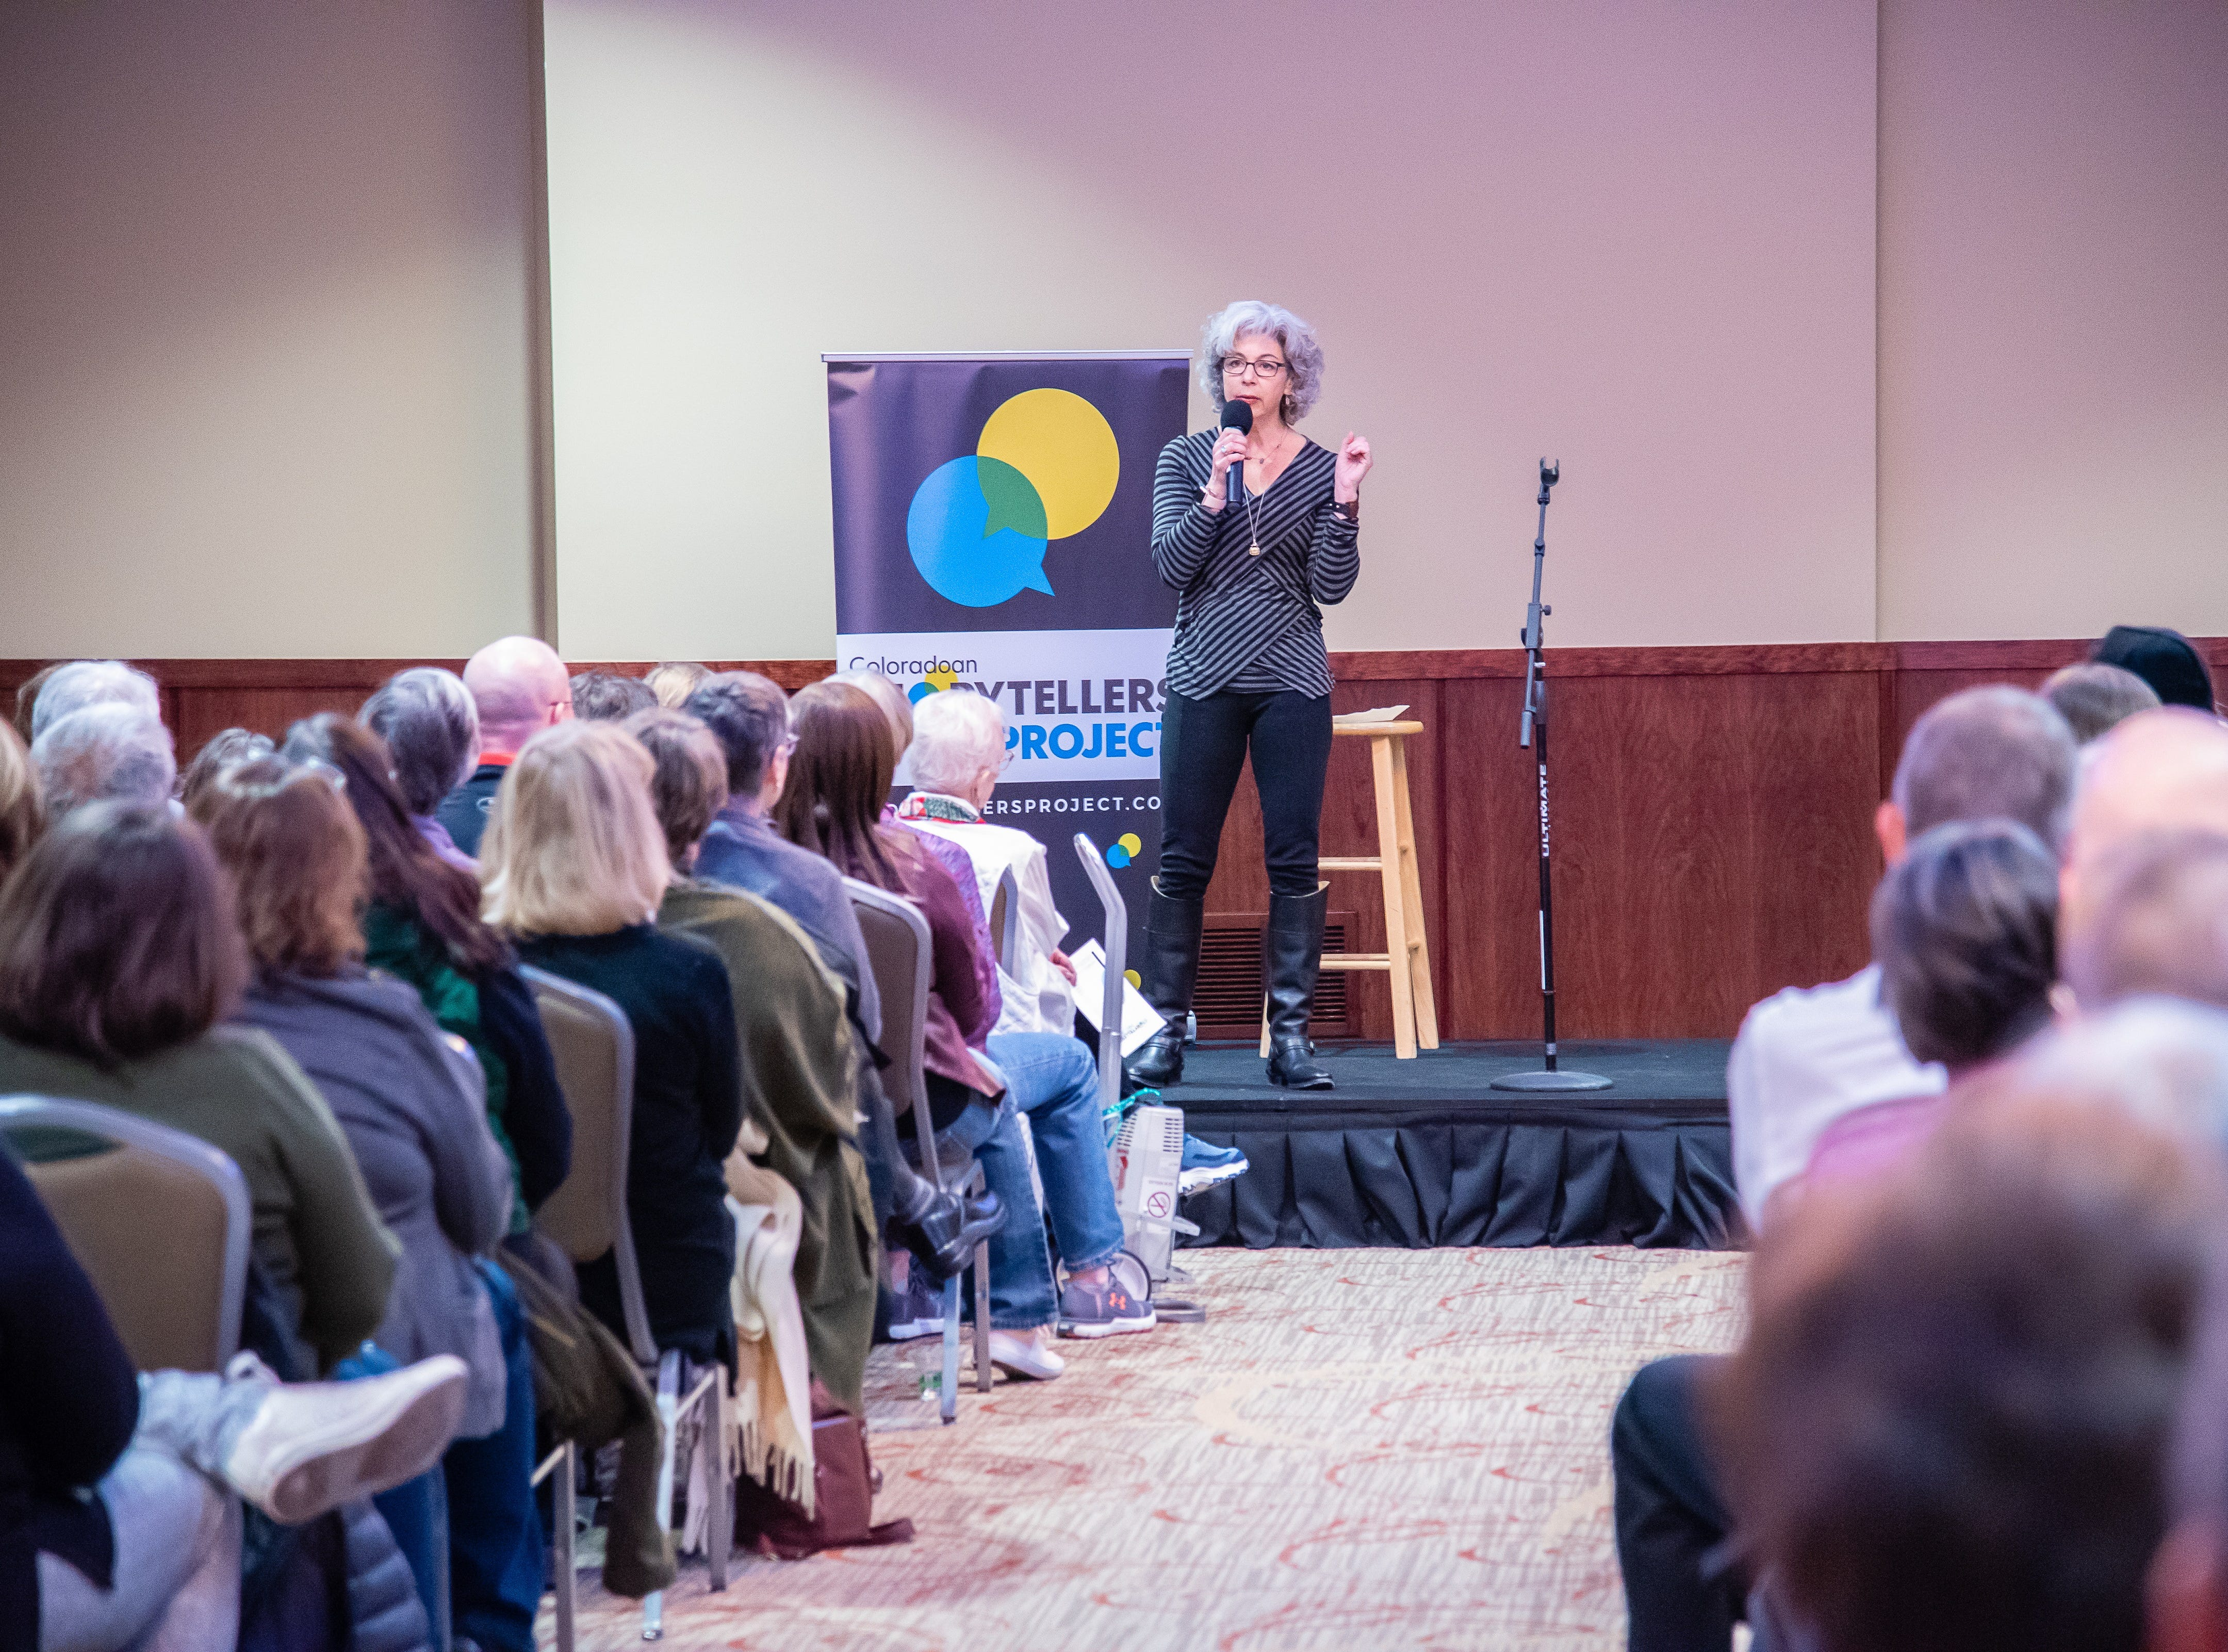 Storyteller Leah Barrett tells a story about hope and healing  during the Coloradoan Storytellers Project at Lincoln Center on Tuesday, December 11, 2018.